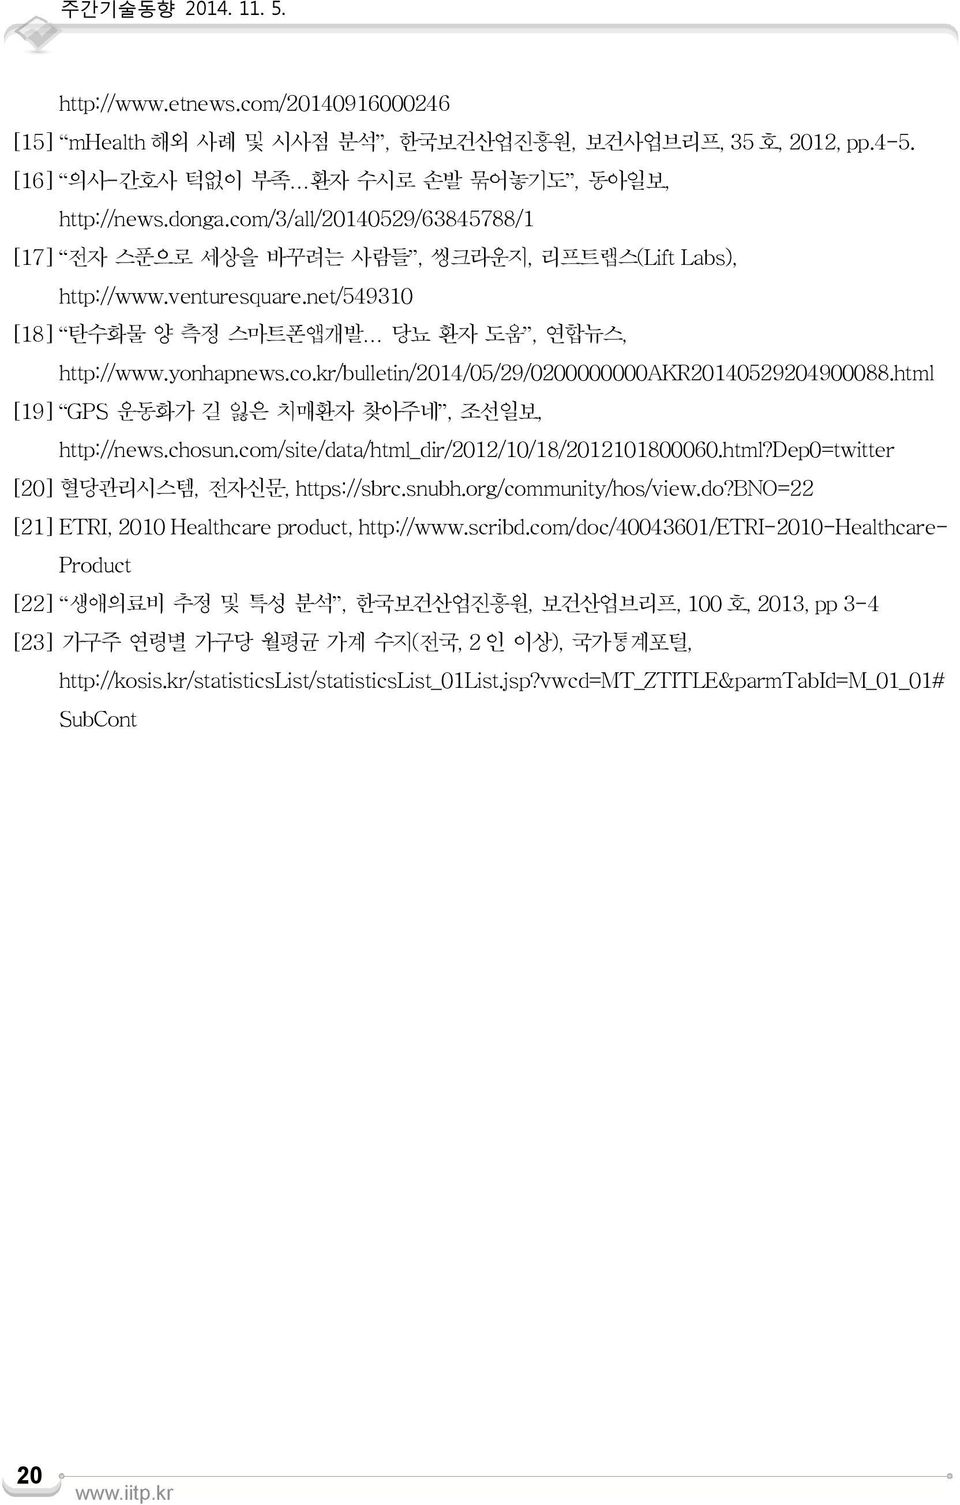 html [19] GPS 운동화가 길 잃은 치매환자 찾아주네, 조선일보, http://news.chosun.com/site/data/html_dir/2012/10/18/2012101800060.html?dep0=twitter [20] 혈당관리시스템, 전자신문, https://sbrc.snubh.org/community/hos/view.do?